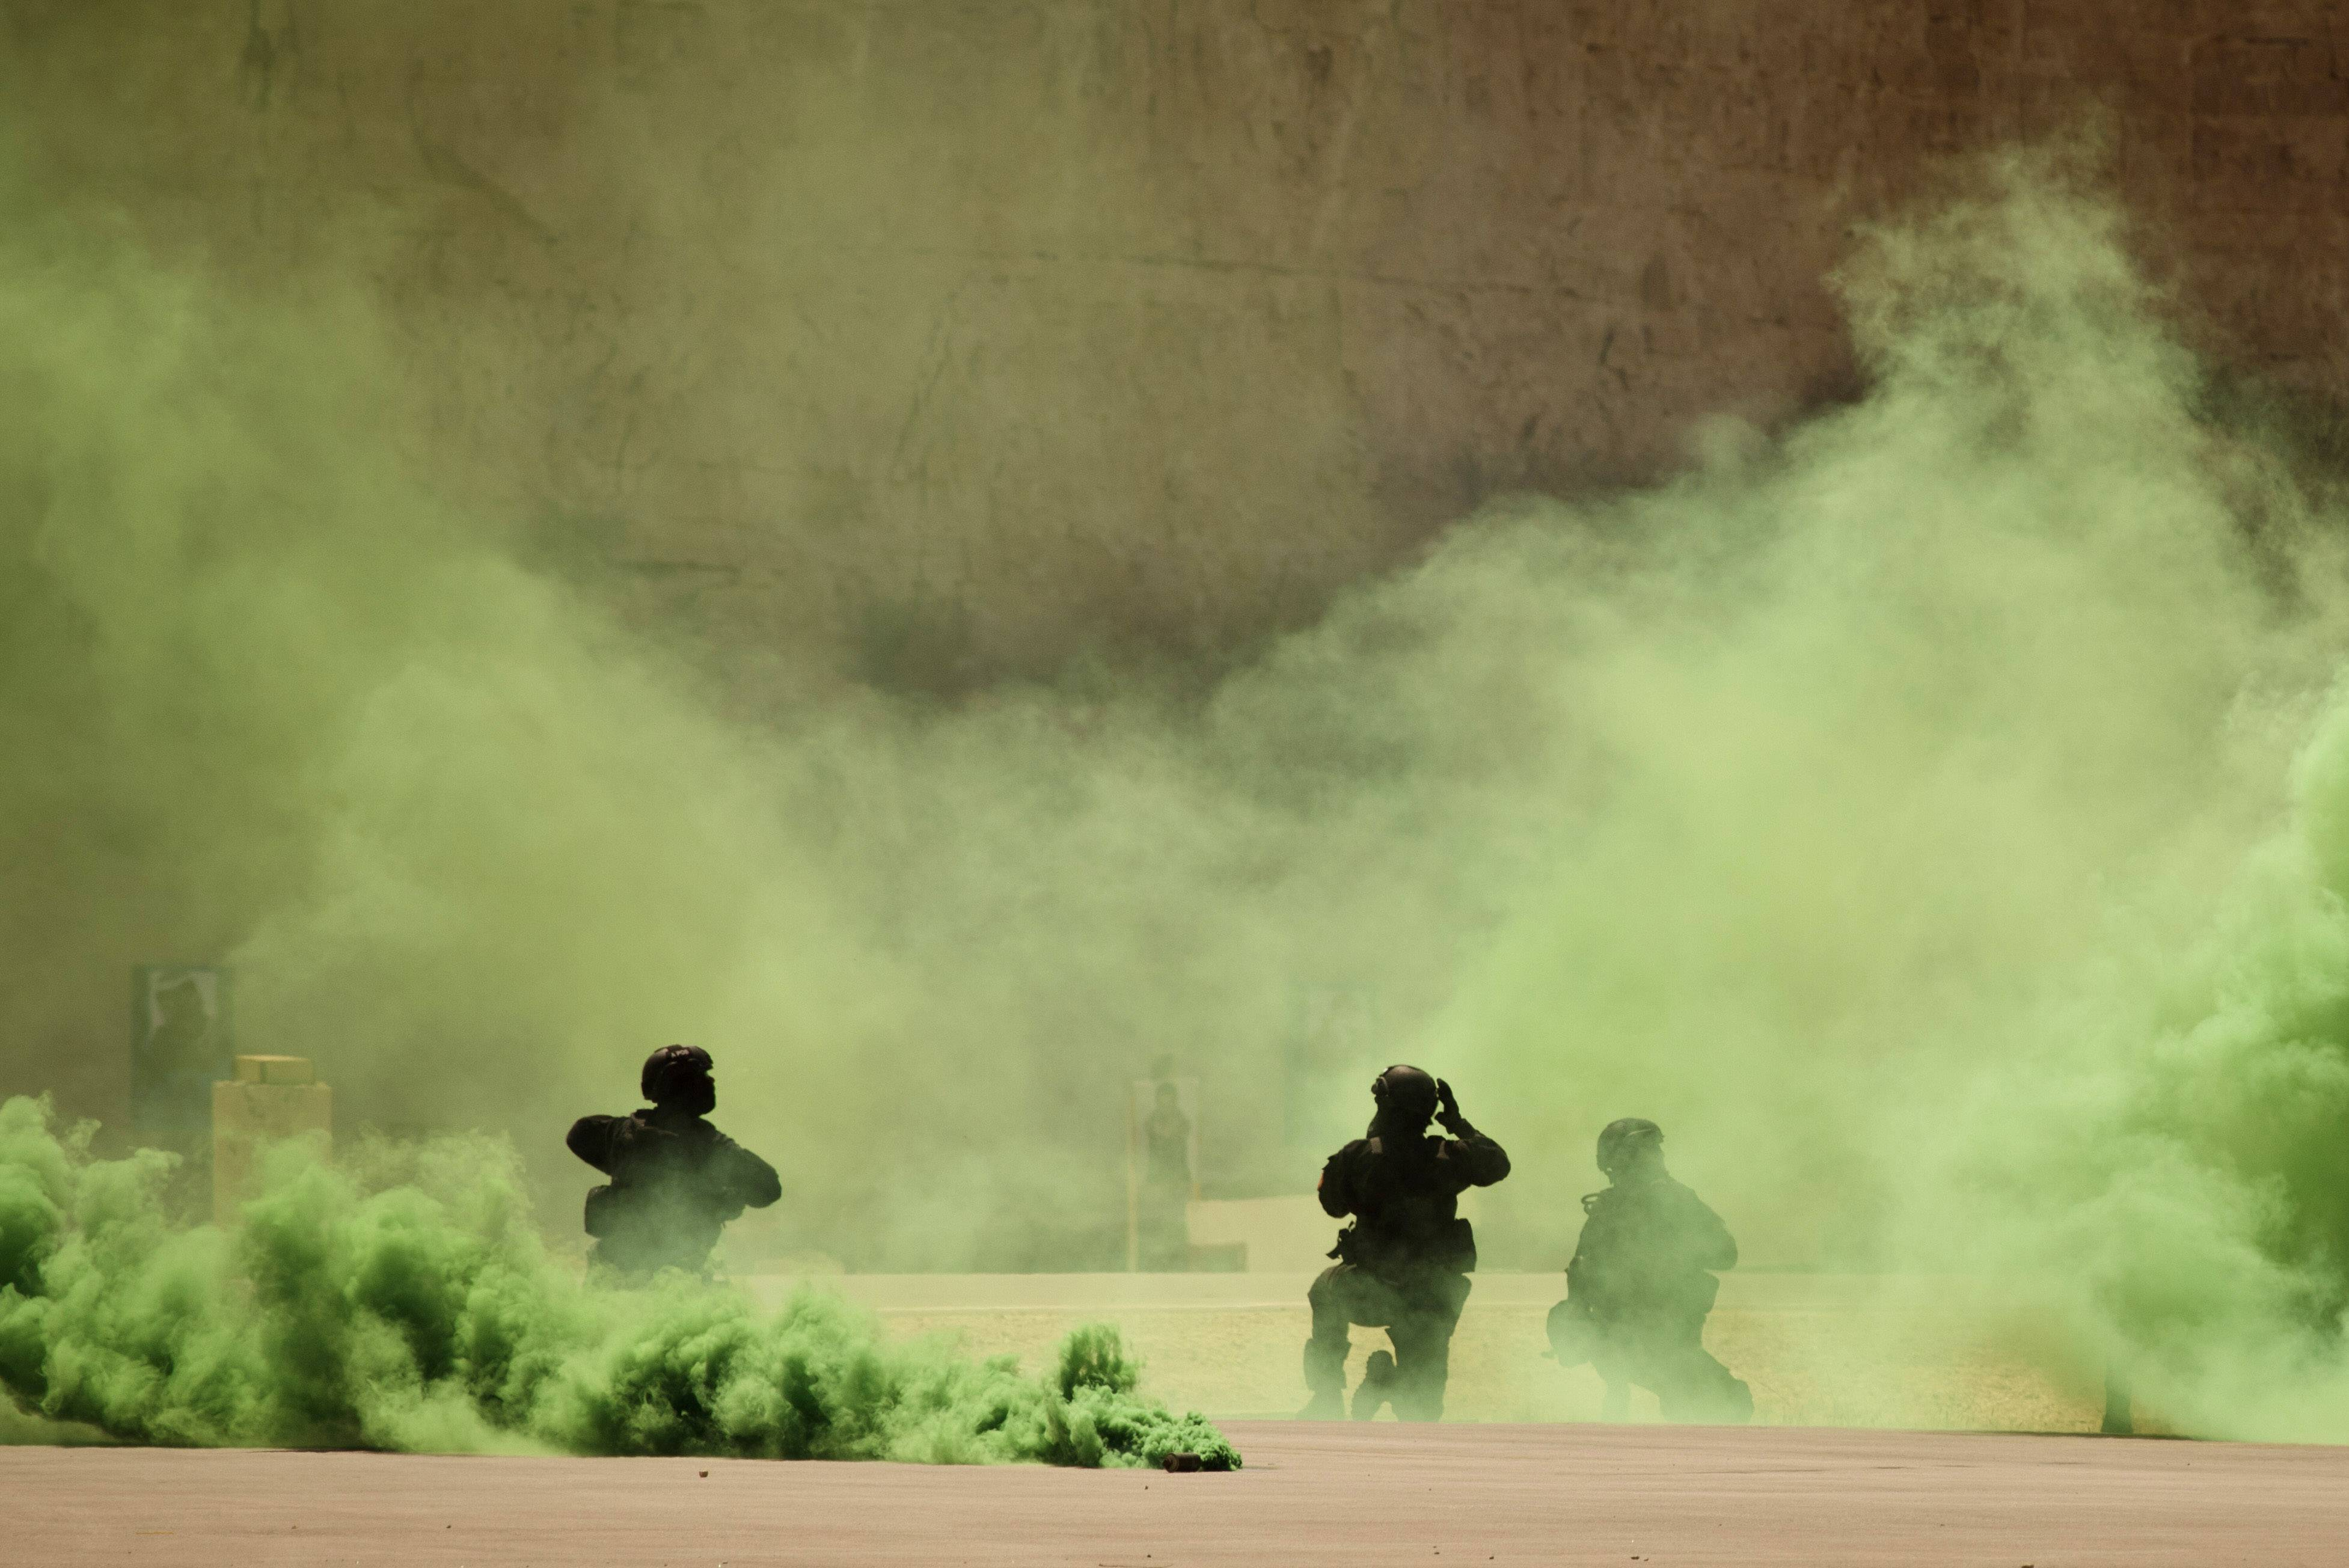 Soldiers participate in a combined special operations demonstration with commandos from Jordan, Iraq and the U.S. as part of Eager Lion multinational military maneuvers, at the King Abdullah Special Operations Training Center in Jordan on June 20, 2013.